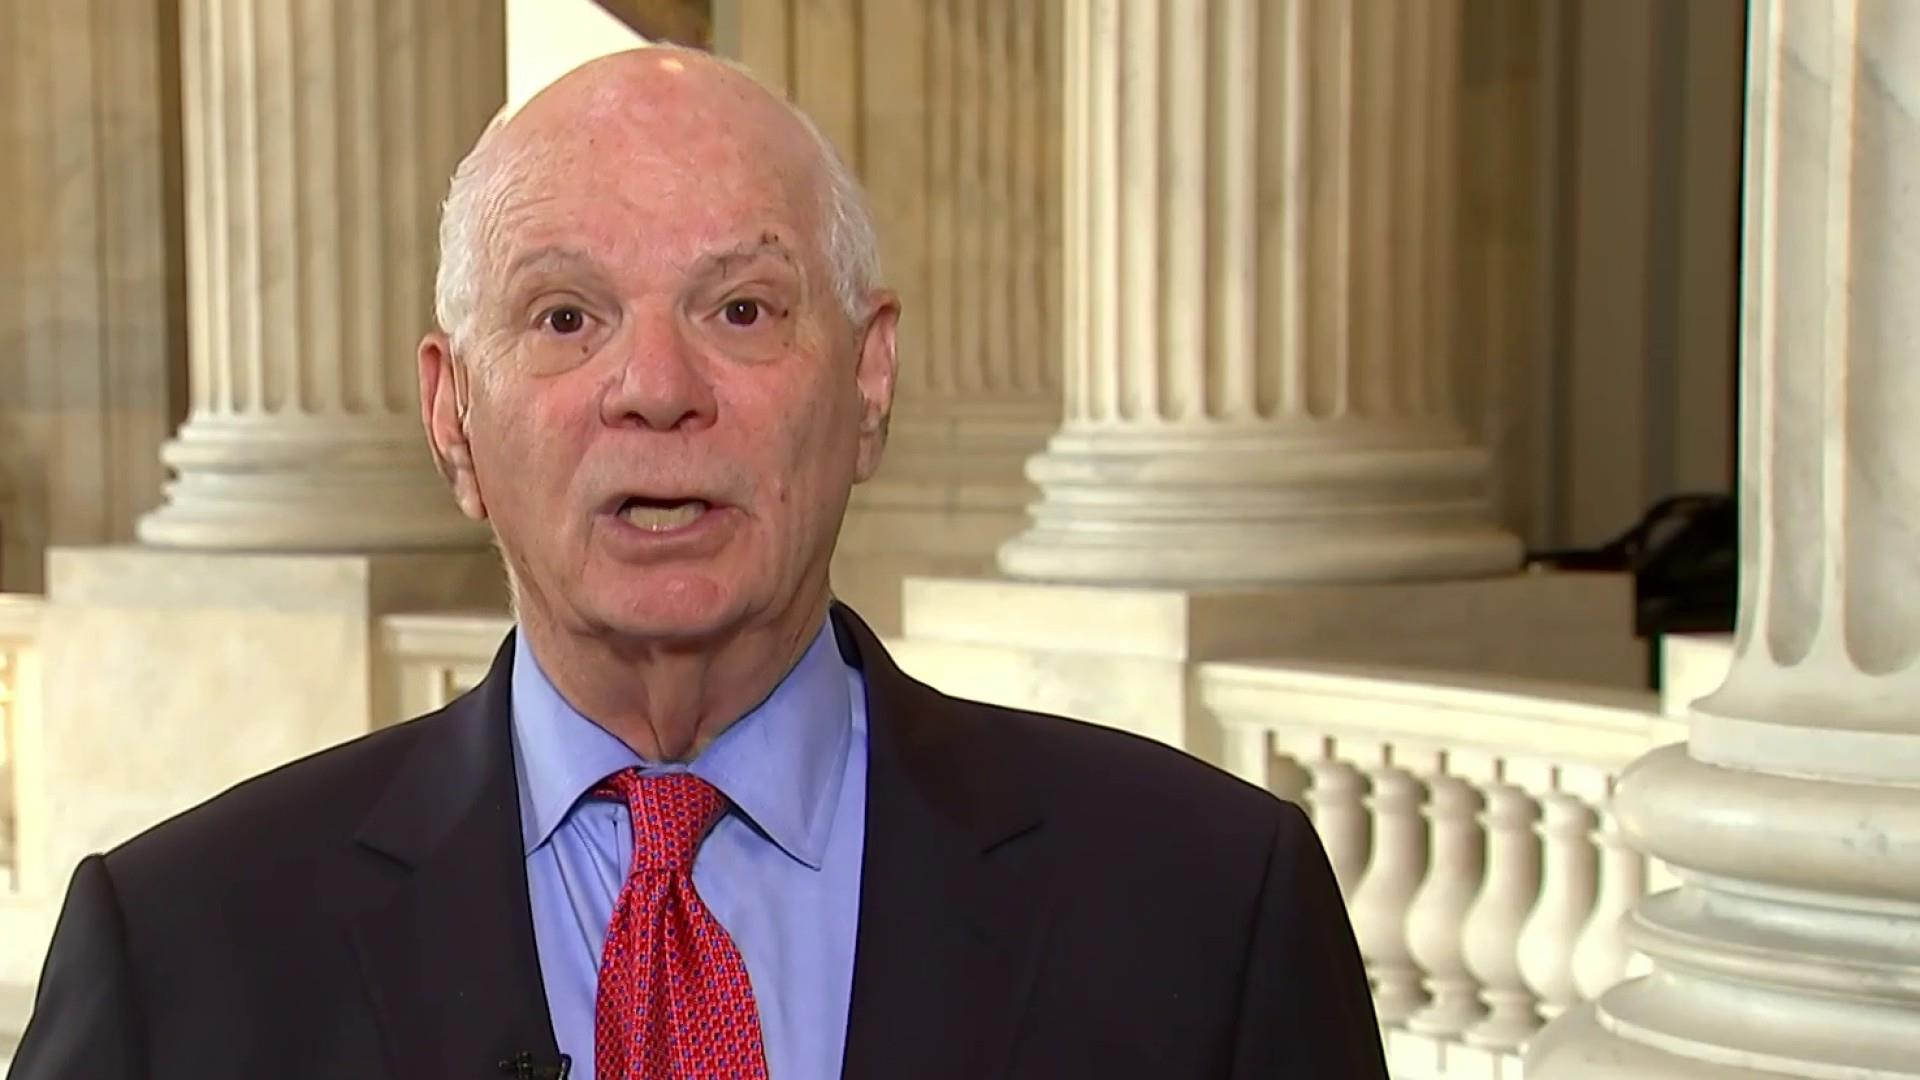 Full Cardin: Temperature between Iran and U.S 'hotter' after President tweets